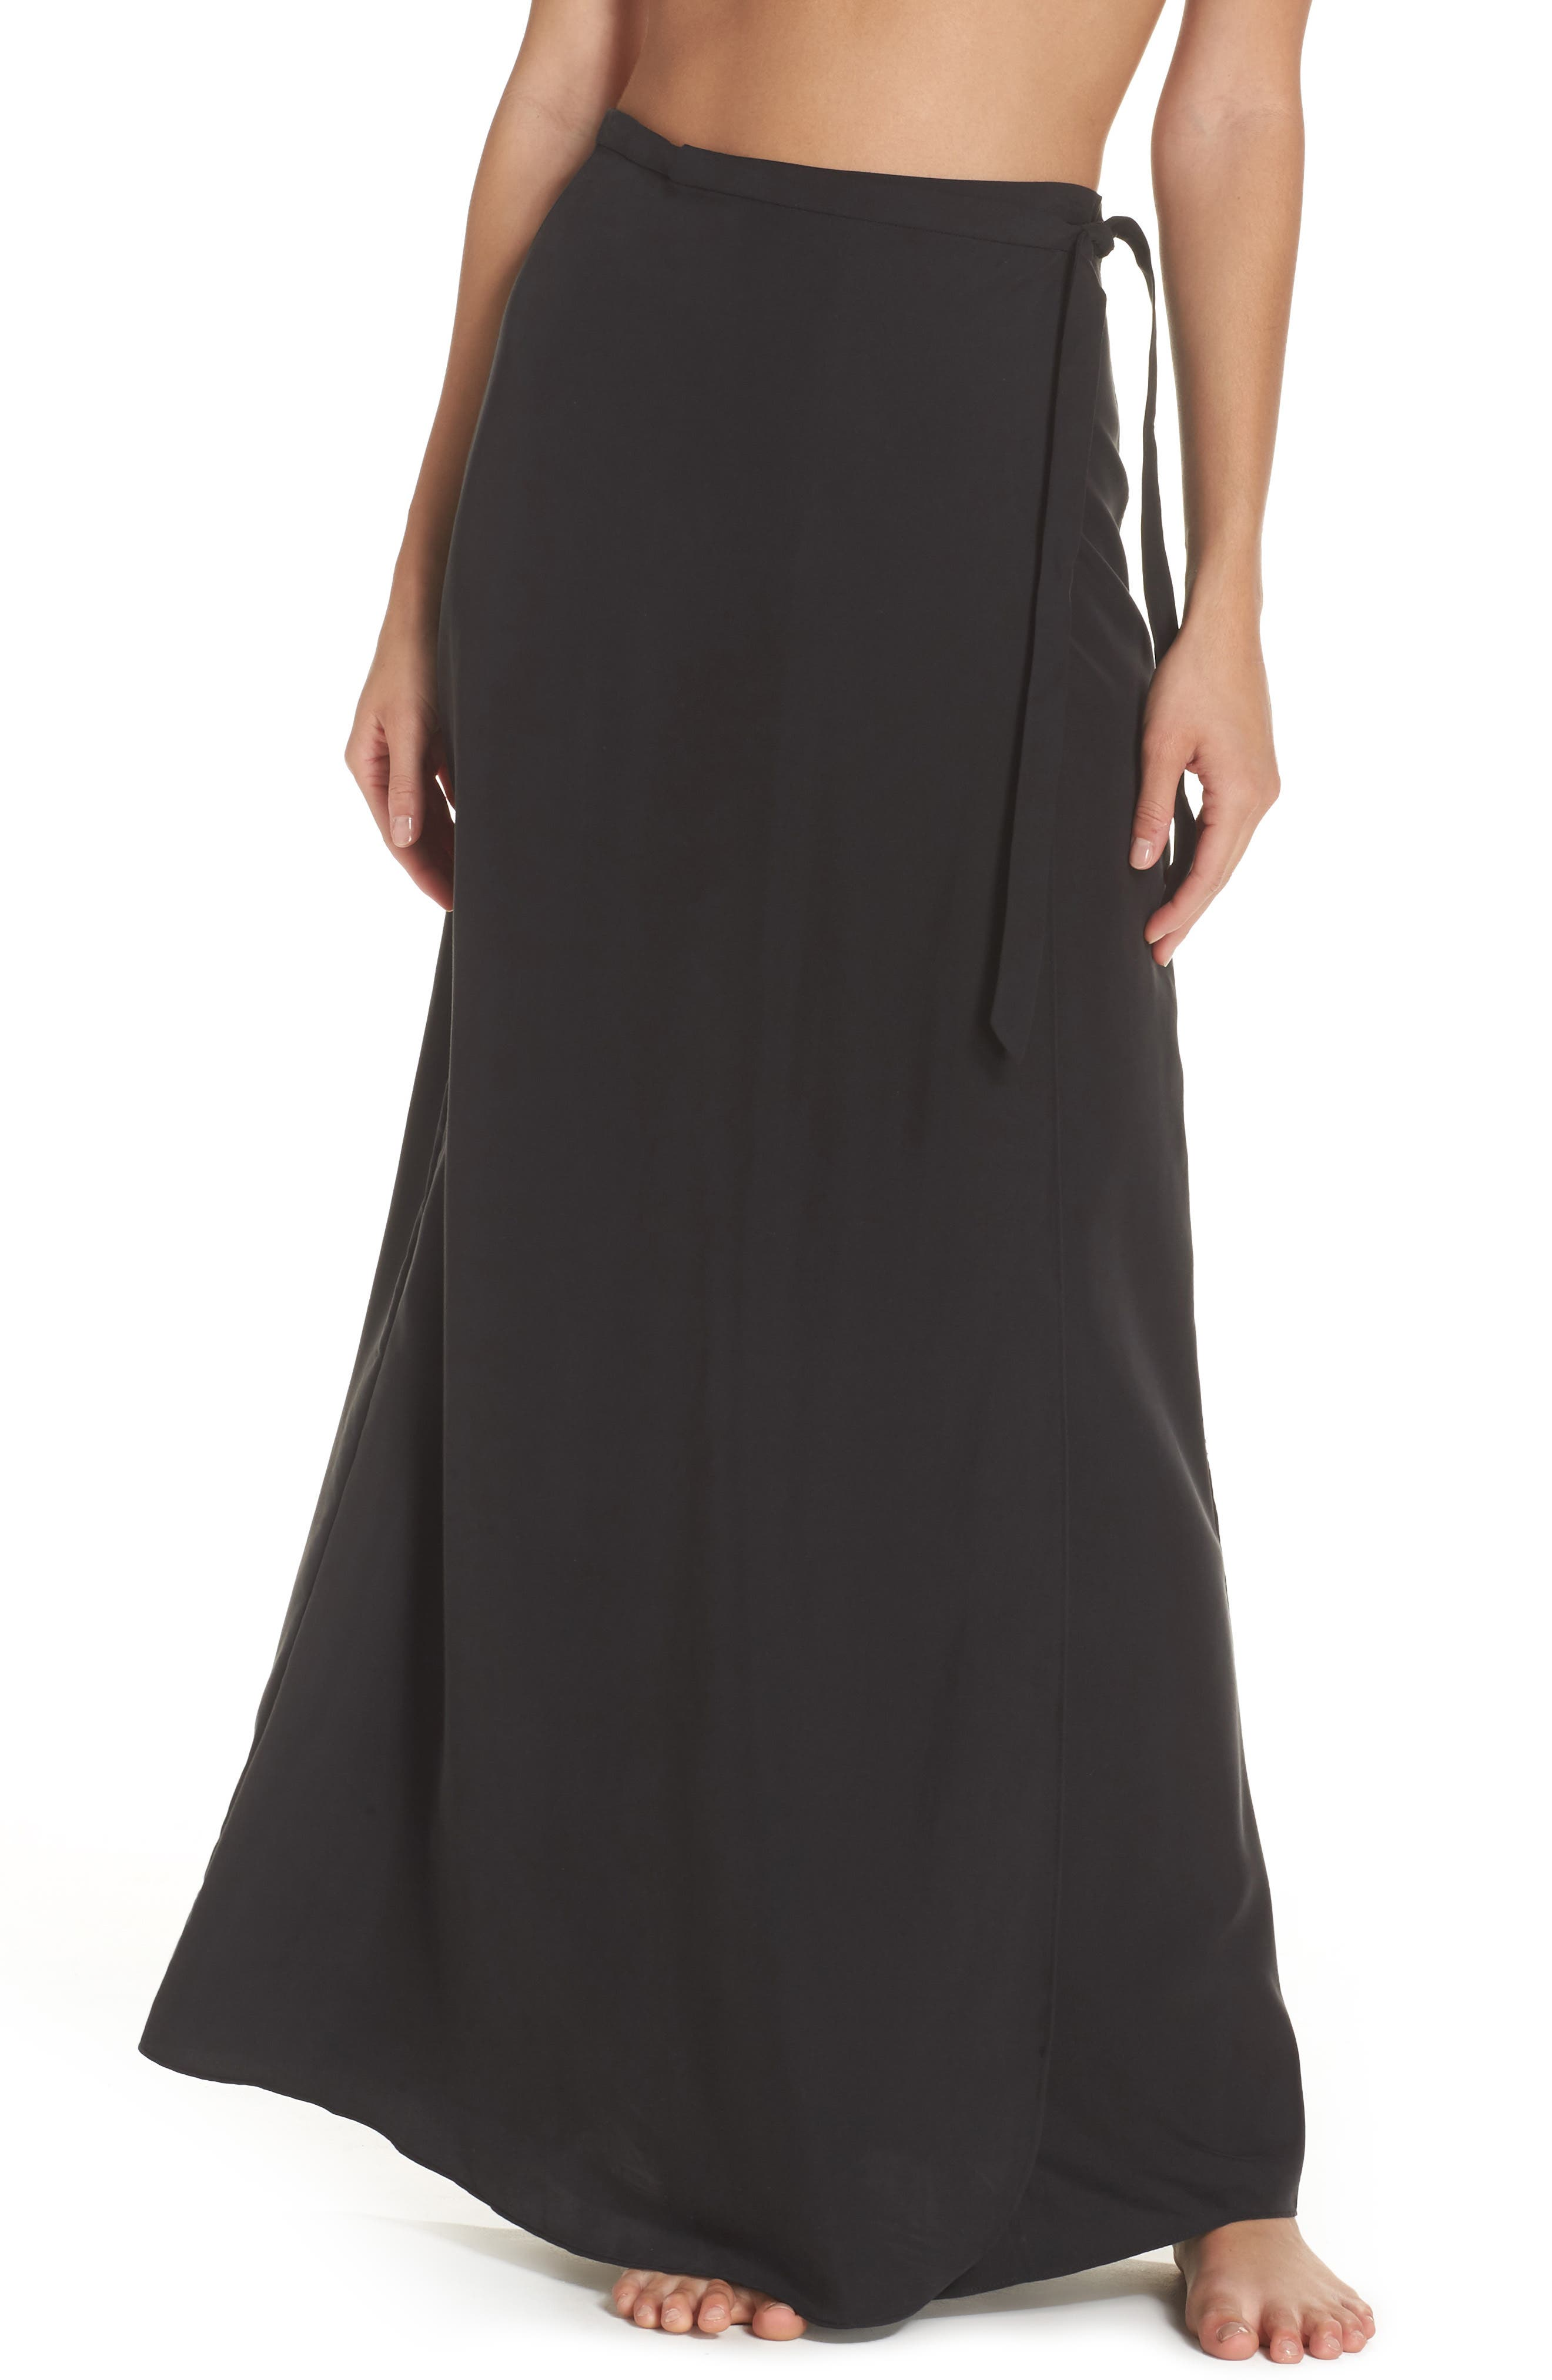 Lasting Impressions Cover-Up Maxi Skirt,                         Main,                         color, 001